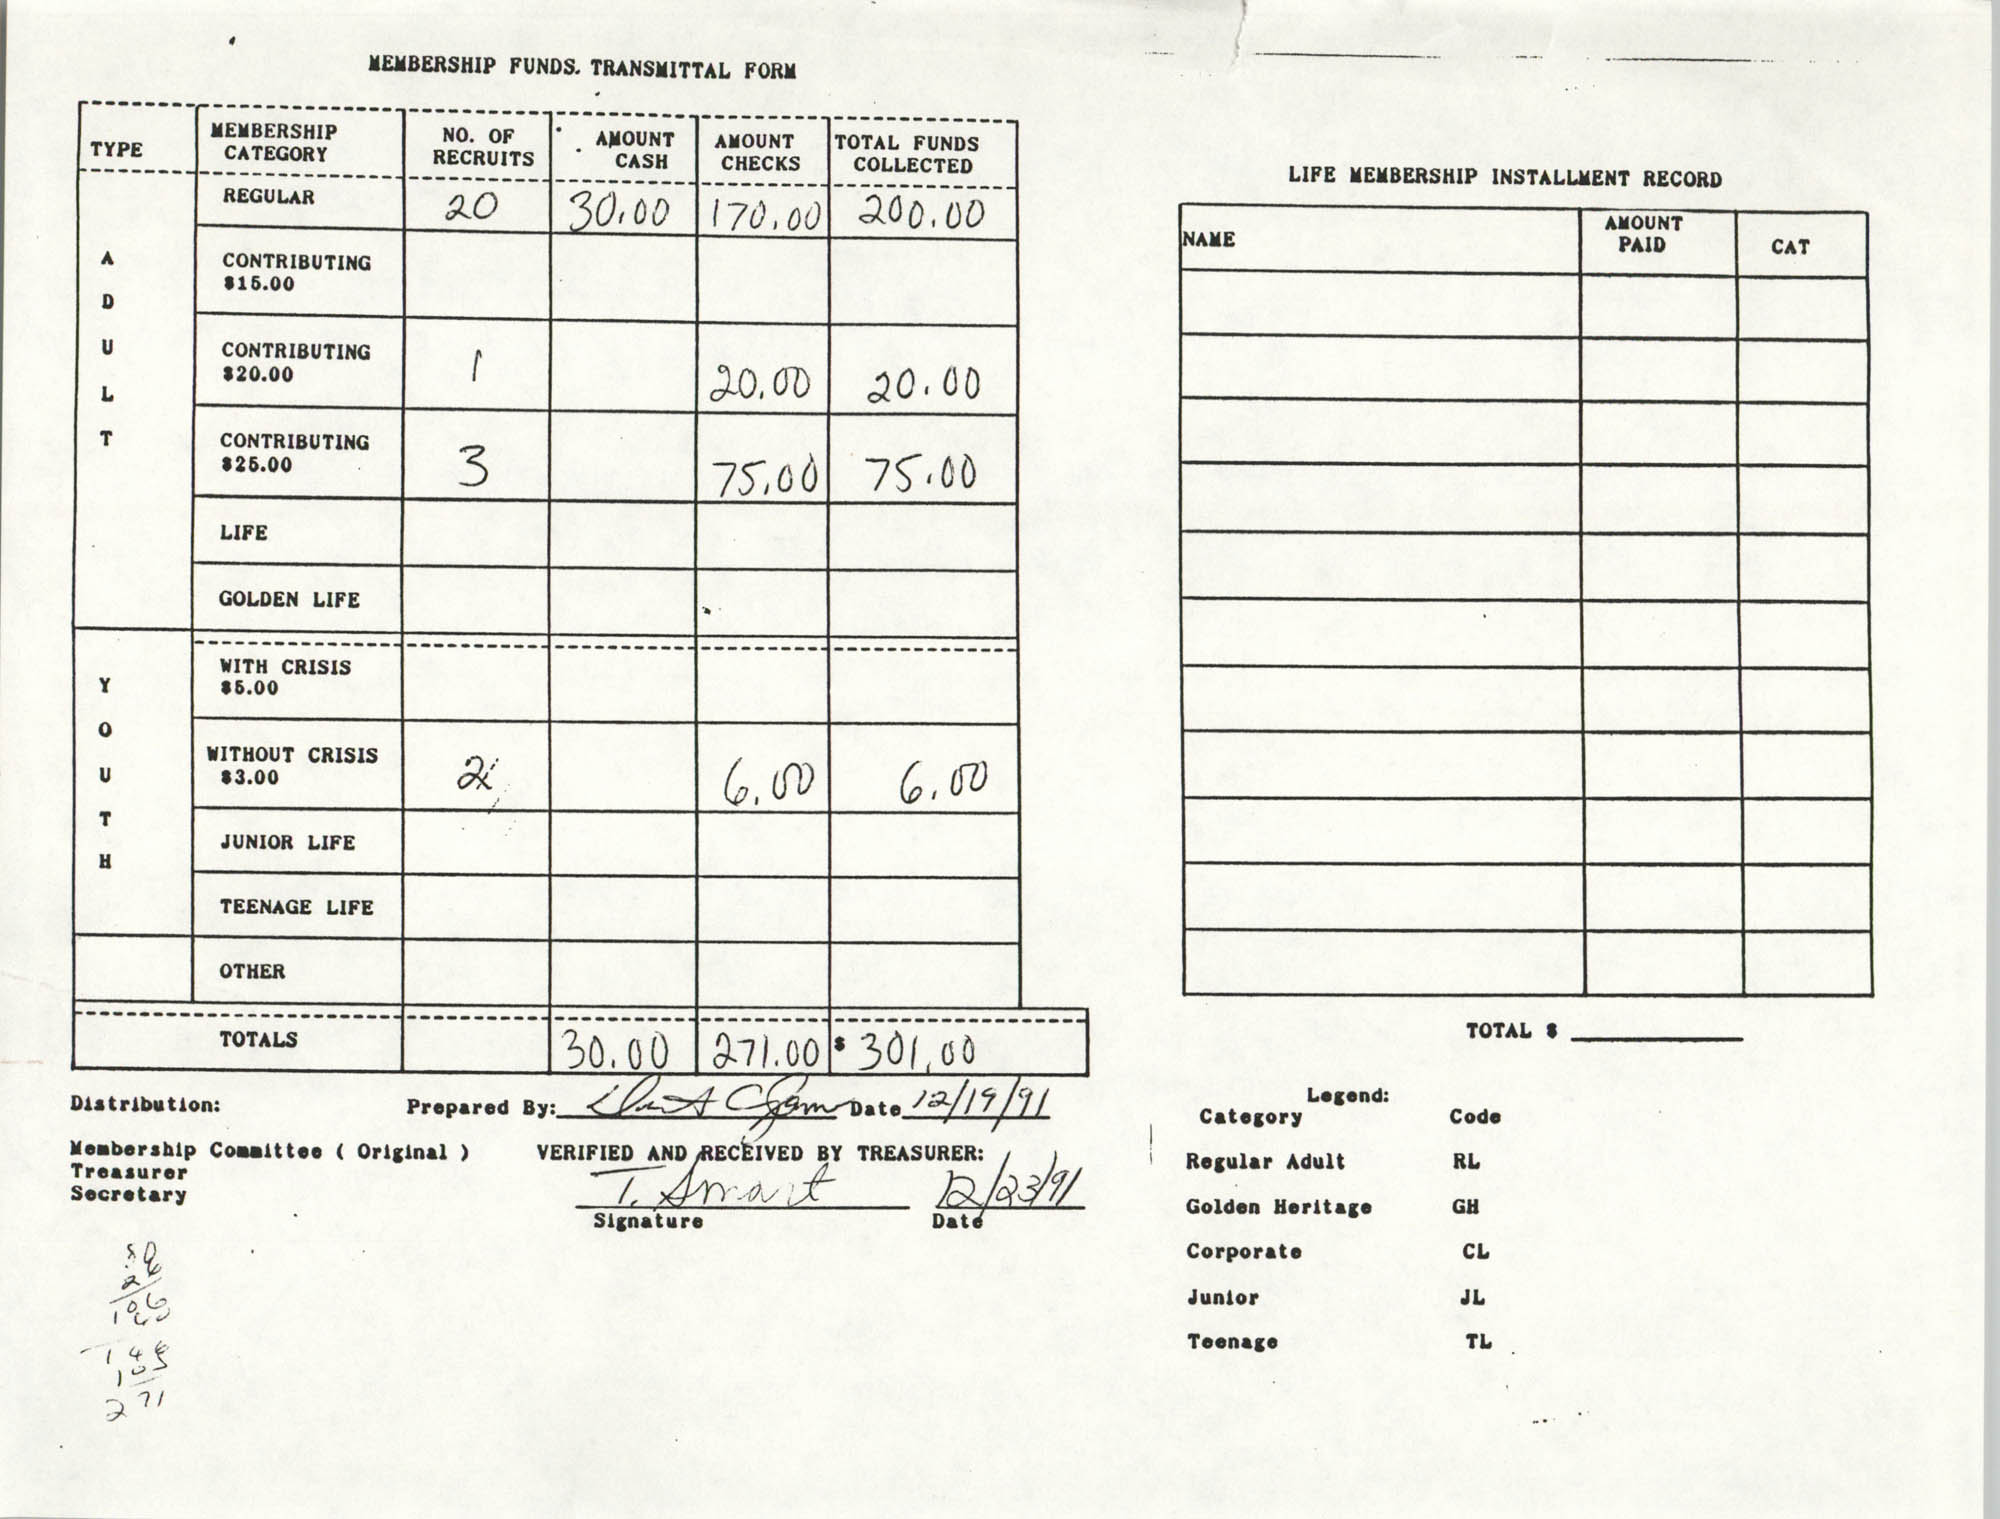 Charleston Branch of the NAACP Funds Transmittal Forms, December 1991, Page 3